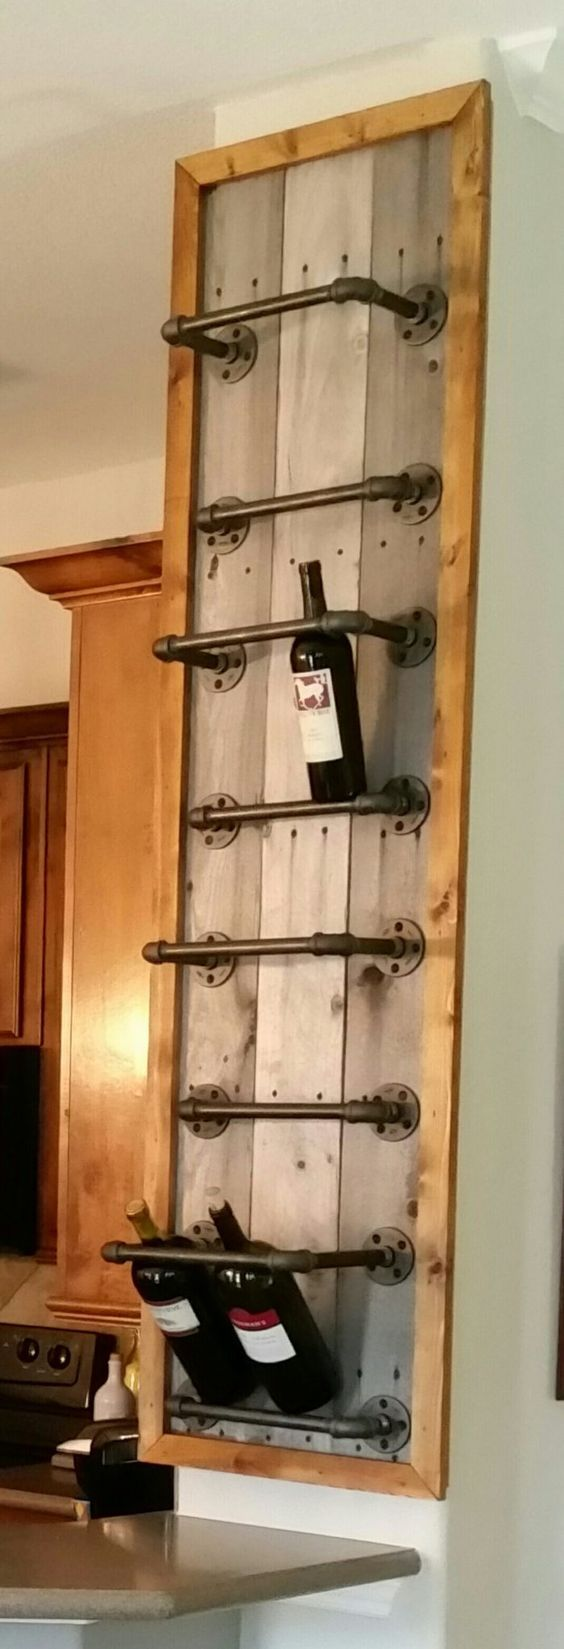 22 Diy Wine Rack Ideas, offer a unique touch to your home - Diy #Wine